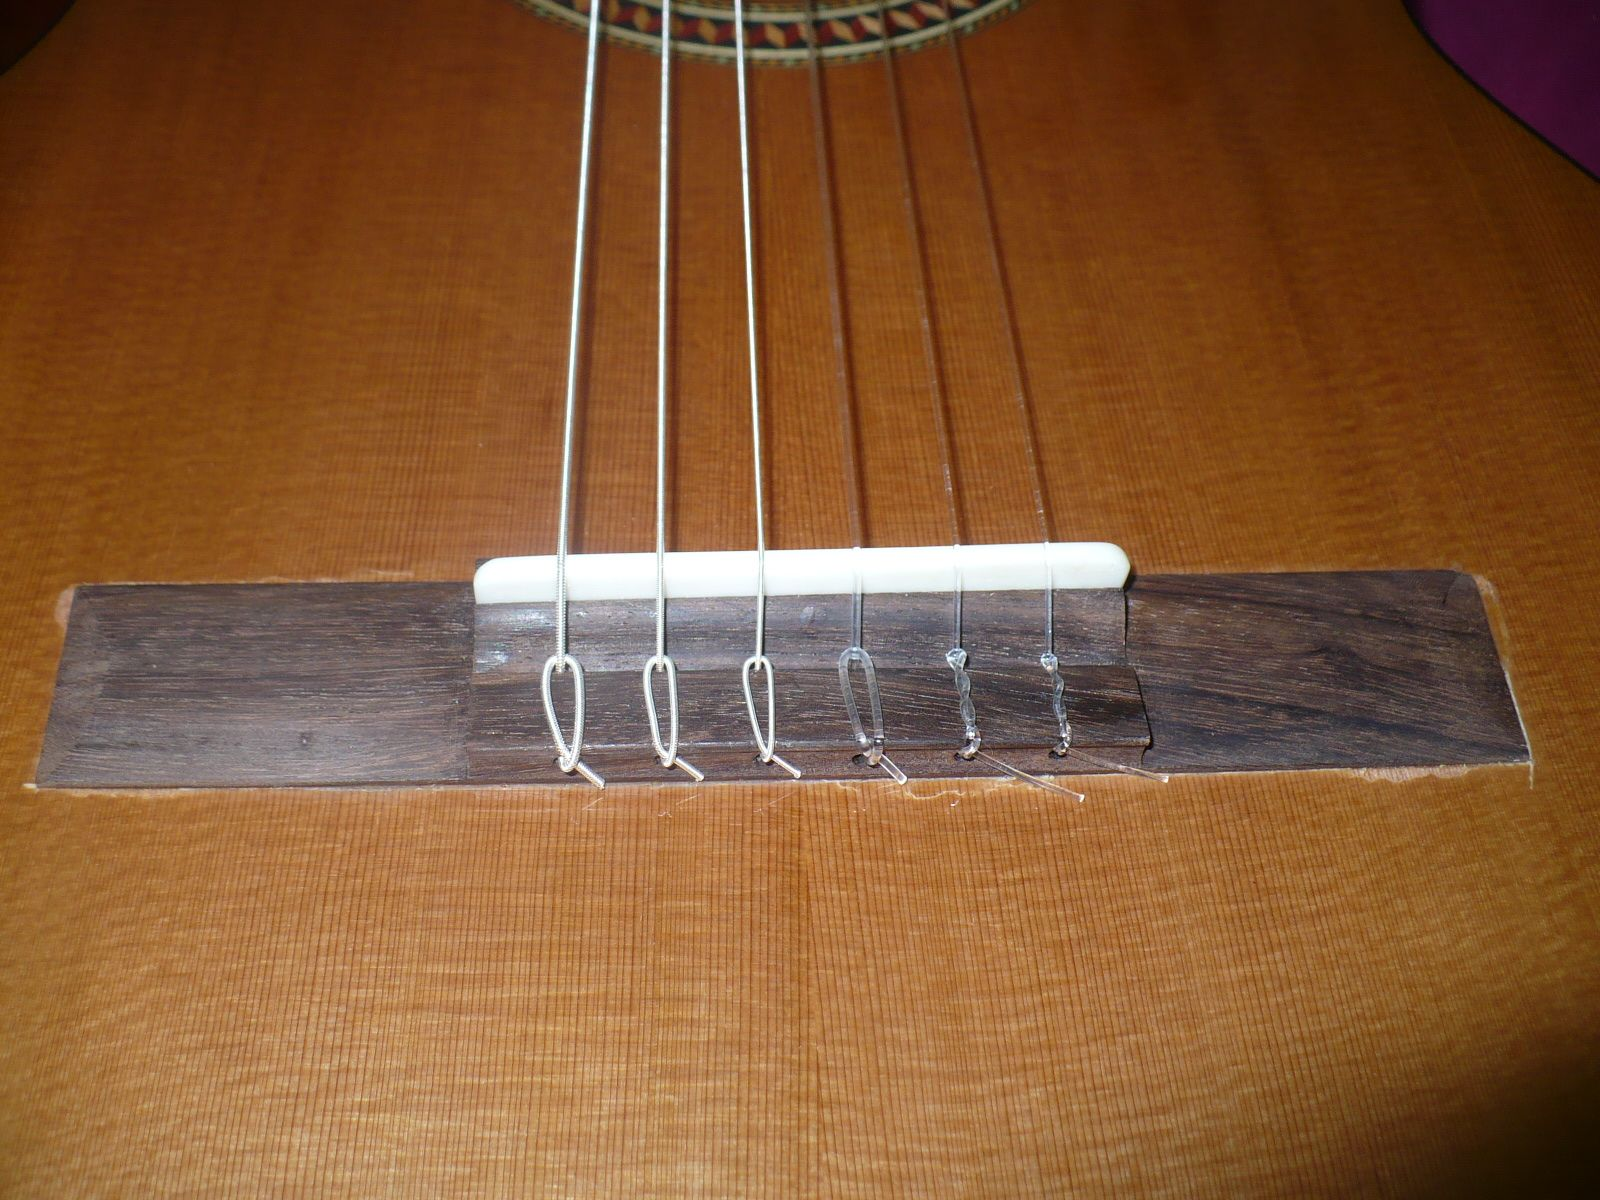 Pin On Classical Guitar Bridge Popped Off